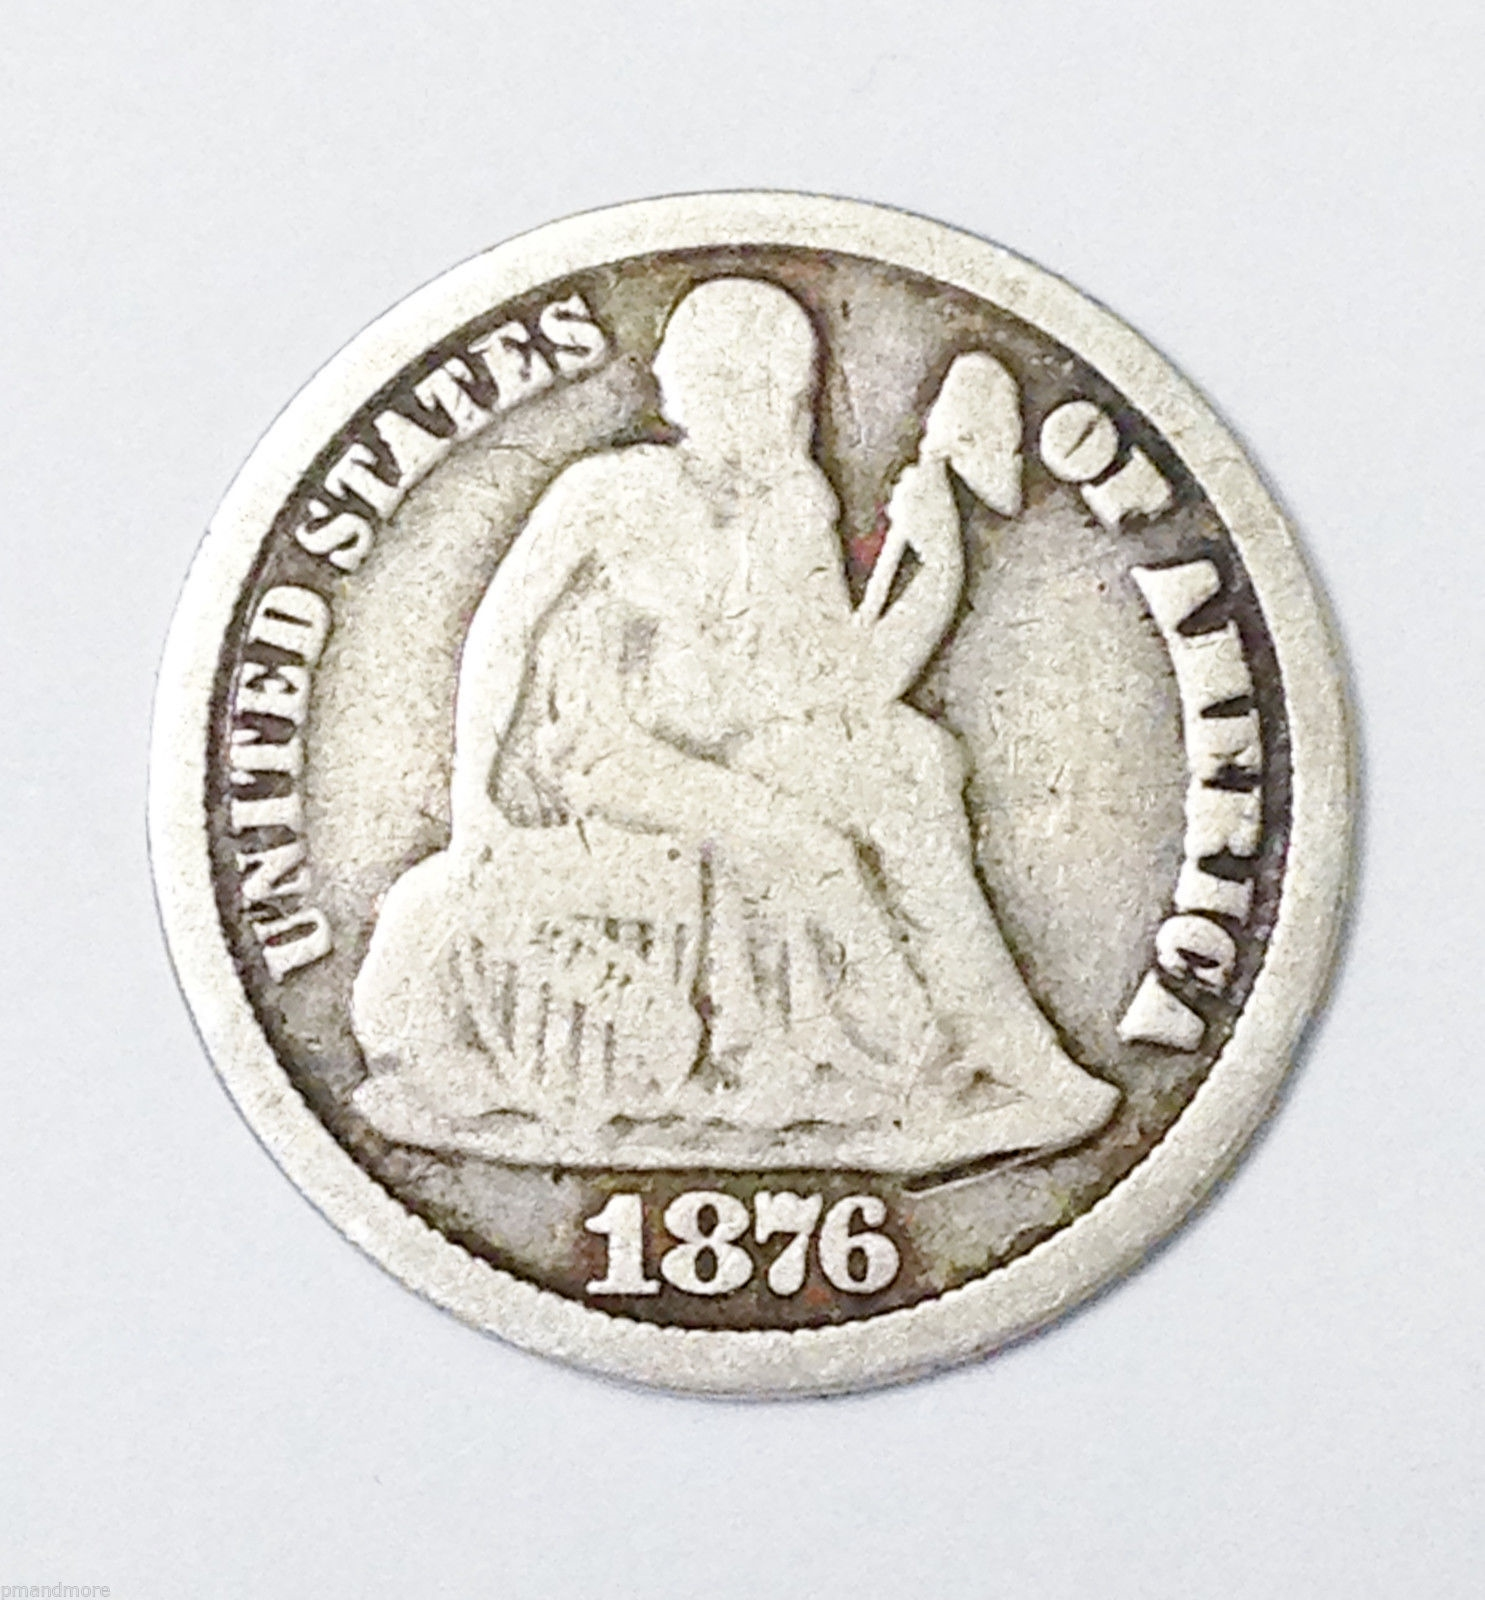 1876 CC CARSON CITY MINT DOUBLE DIE LIBERTY SEATED DIME TEN 10 CENTS -GOOD COIN!